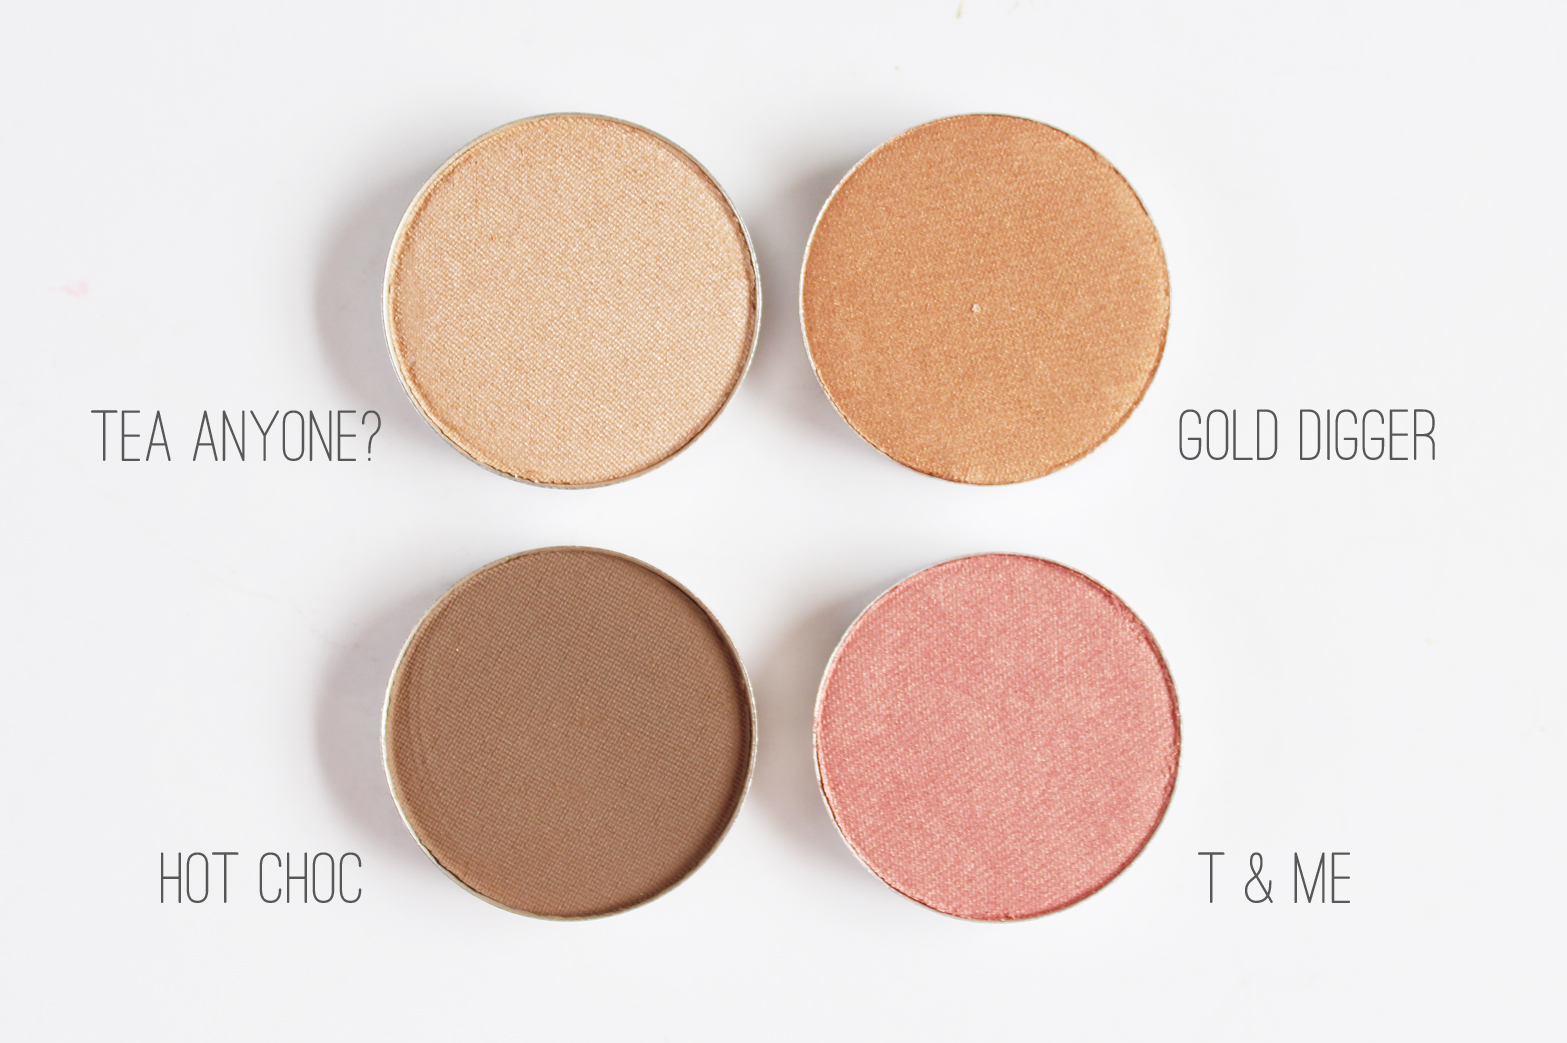 BEAUTY SCHOOL DROPOUT | Single Eyeshadows - Review + Swatches - CassandraMyee